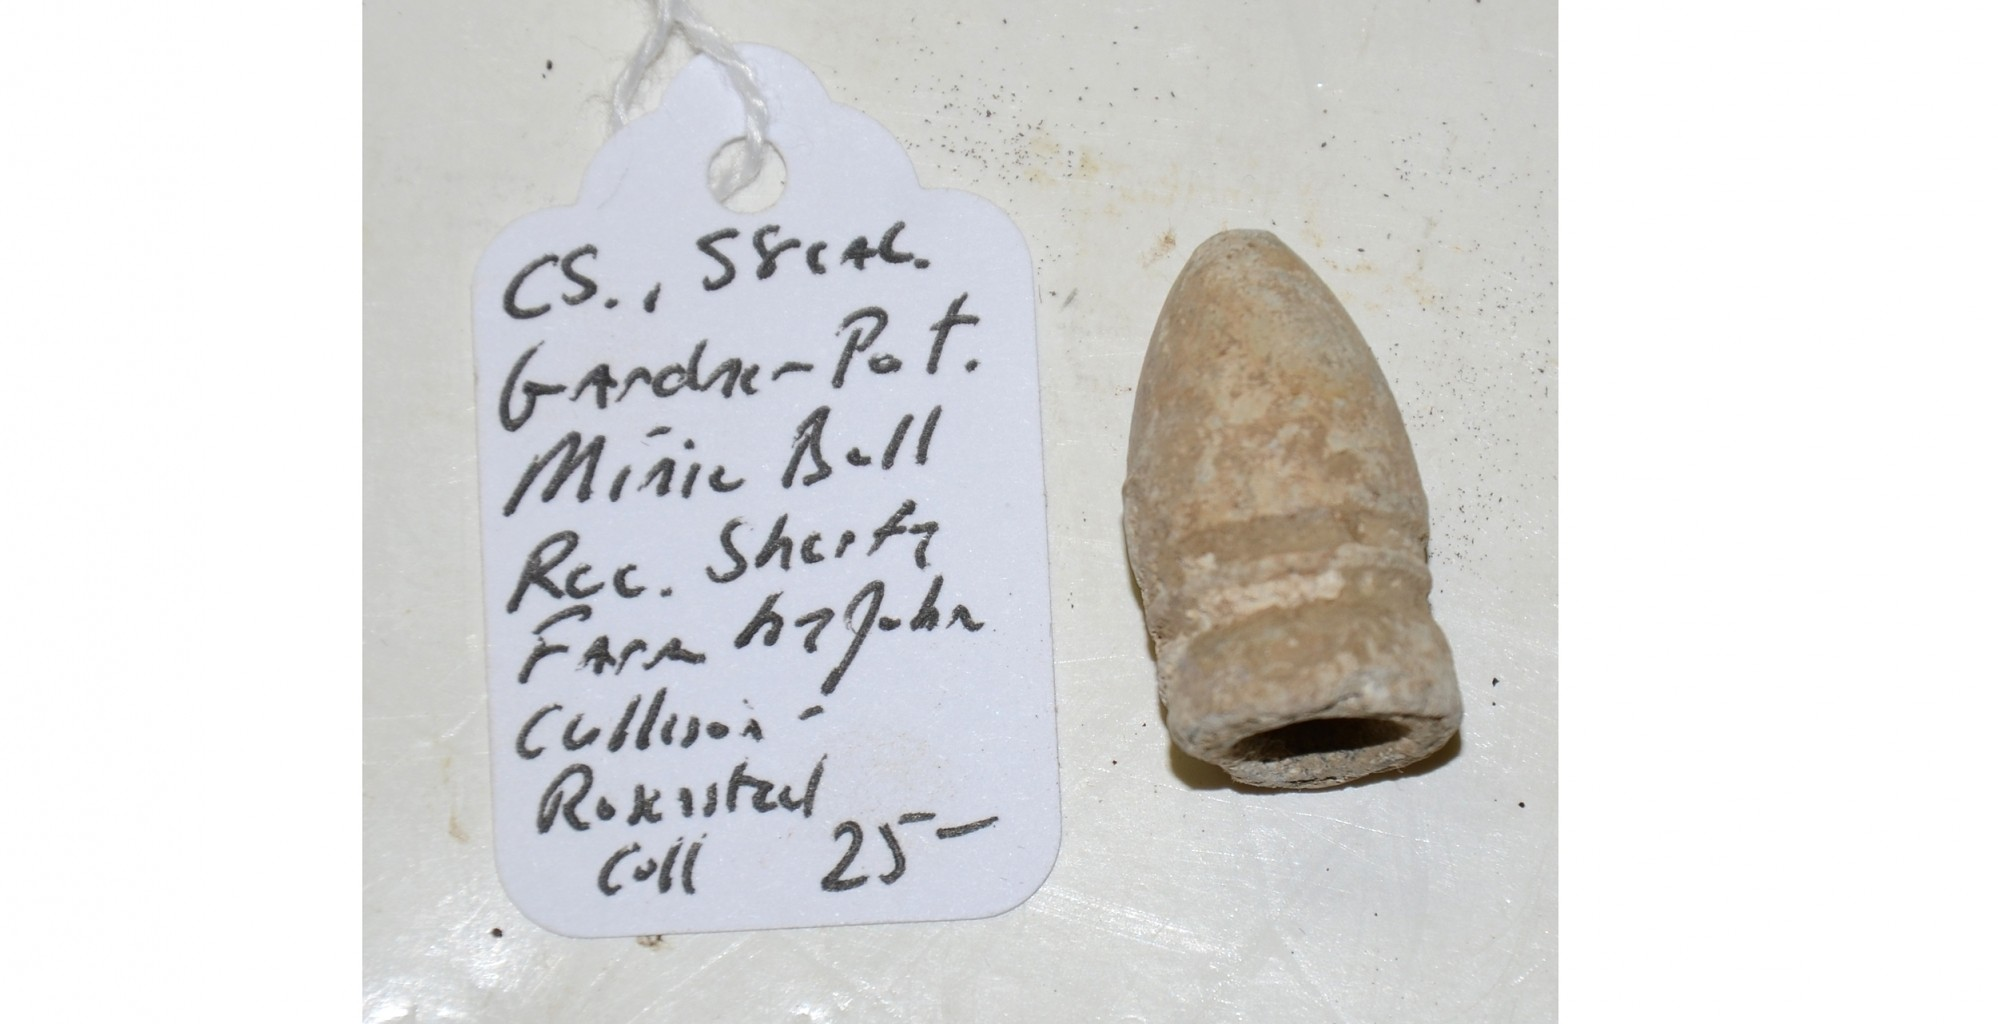 CS .58 CAL GARDNER PATENT MINIE BALL RECOVERED ON THE SHERFY FARM, GETTYSBURG